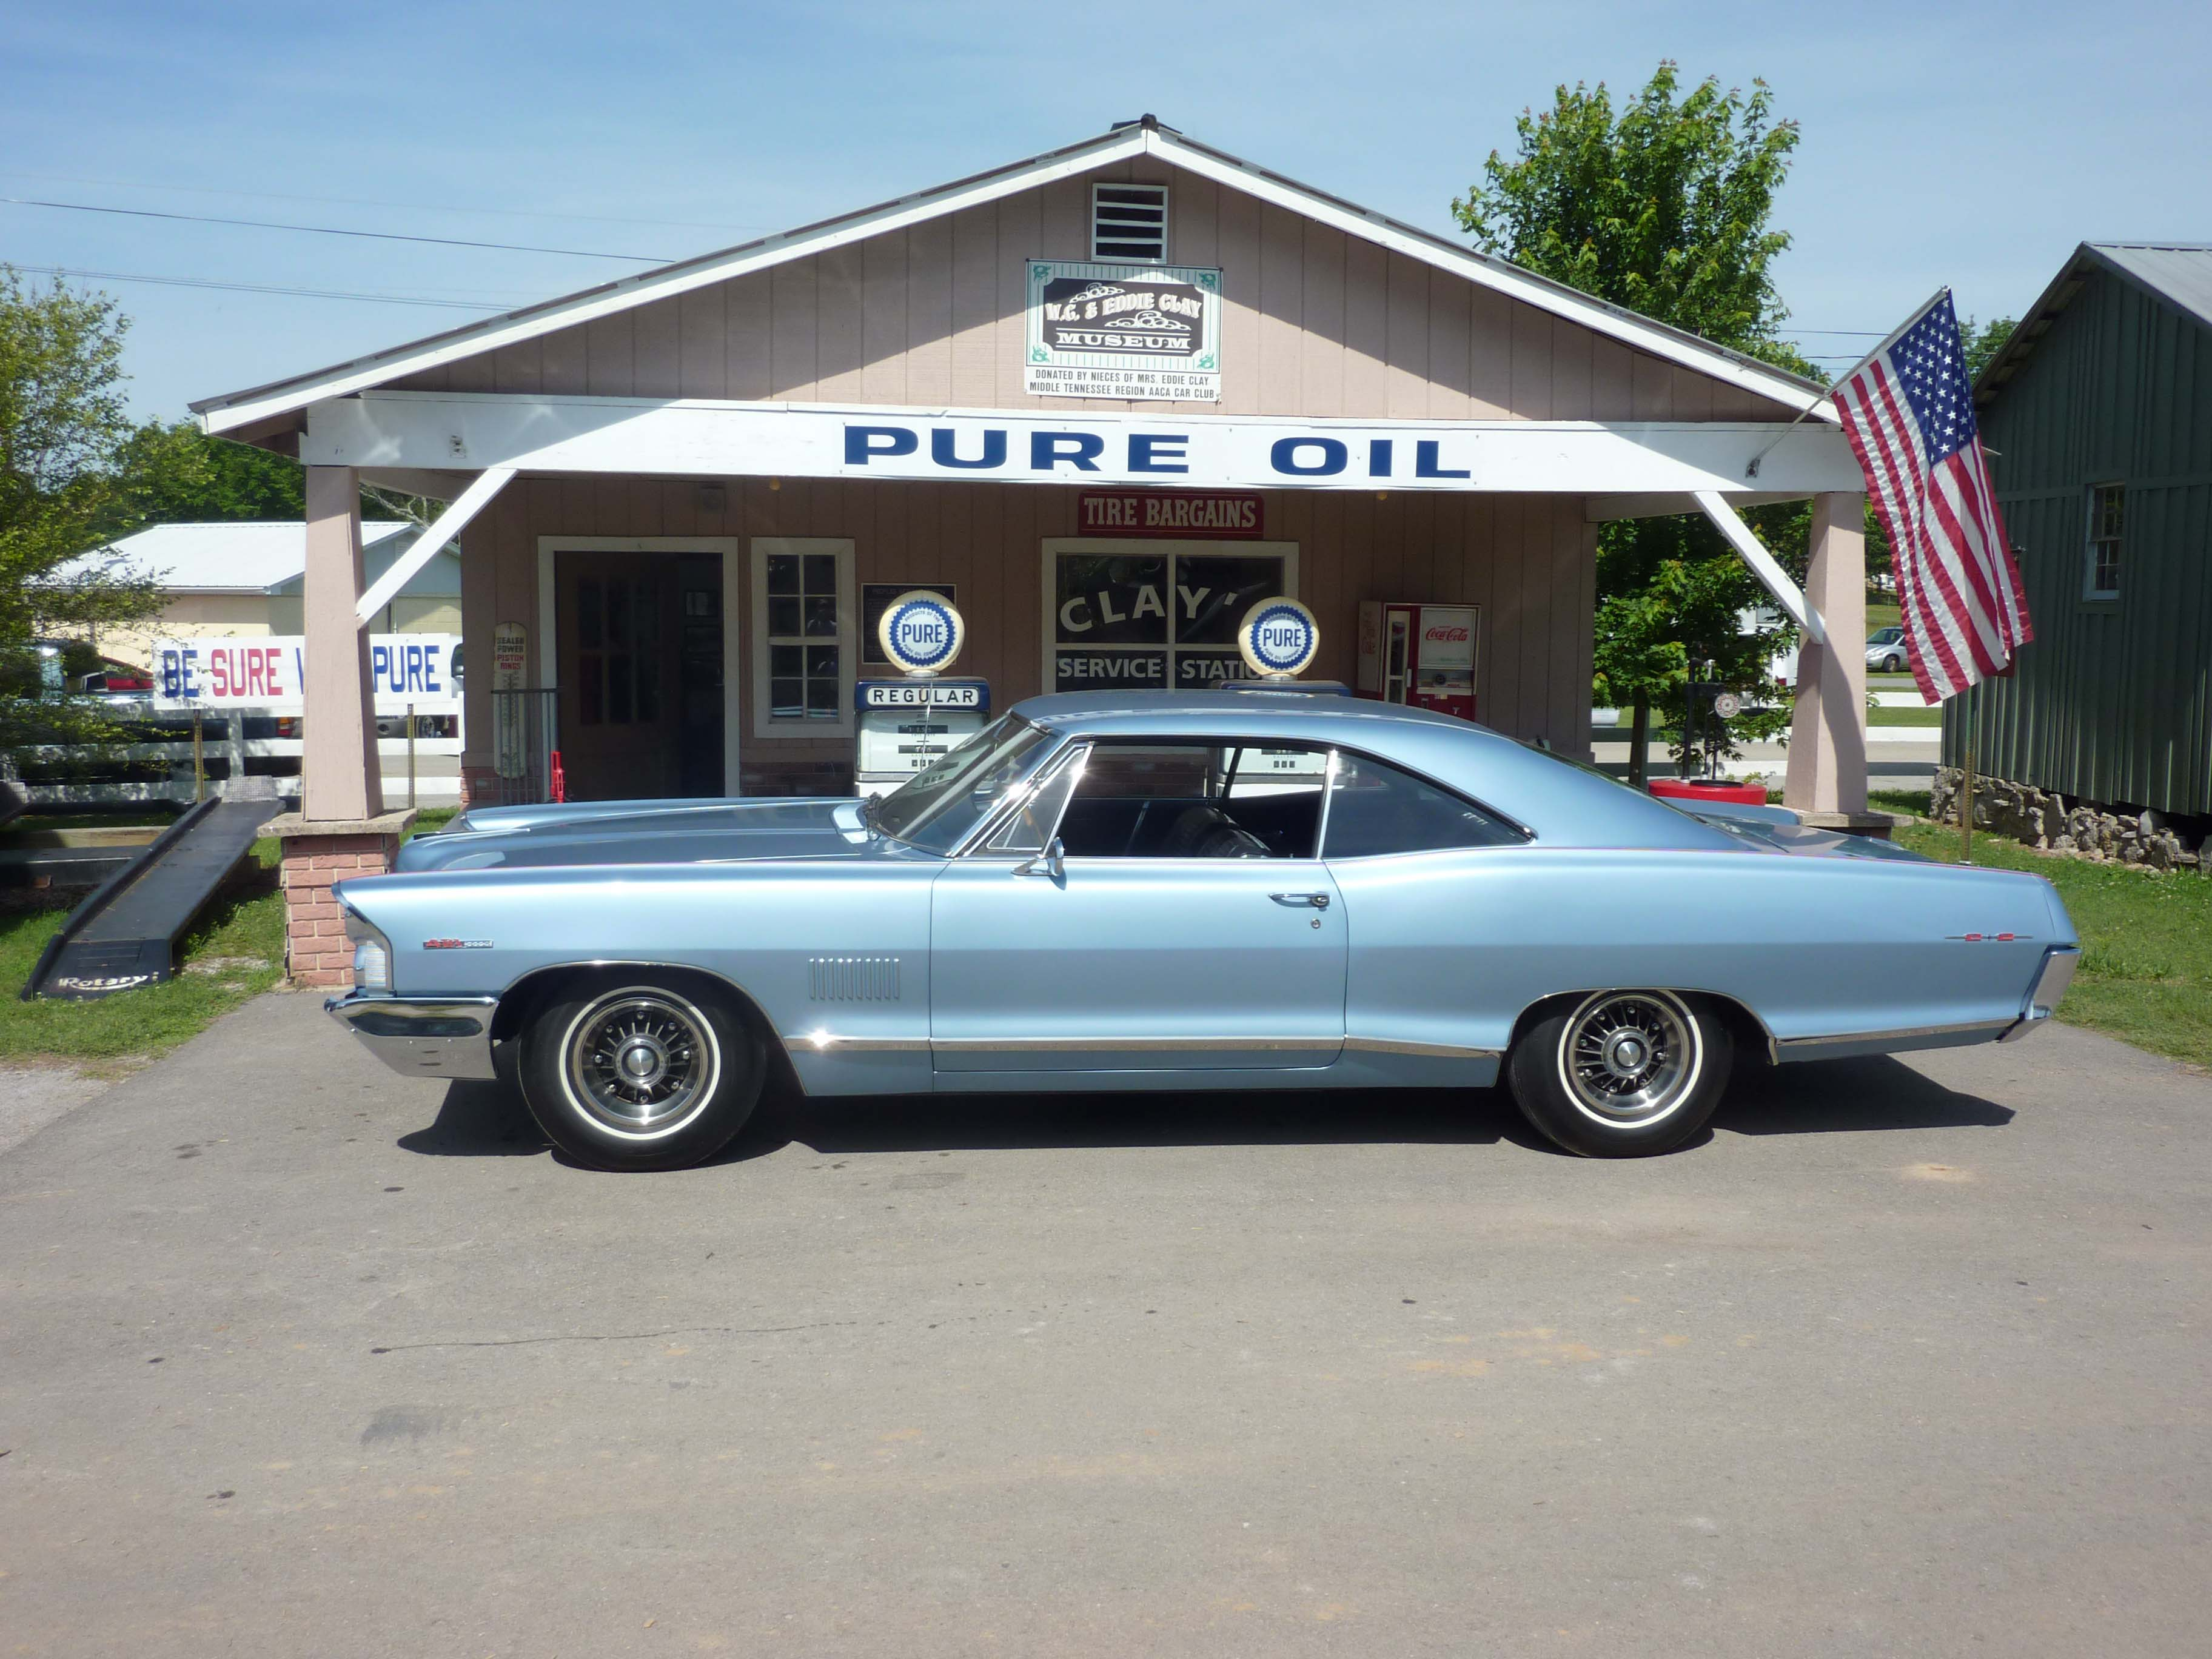 Jack Anderson's restored Fontaine Blue 1965 Pontiac 2+2 has won an AACA Senior Award. It's also a 13-second drag racer in FAST competition.